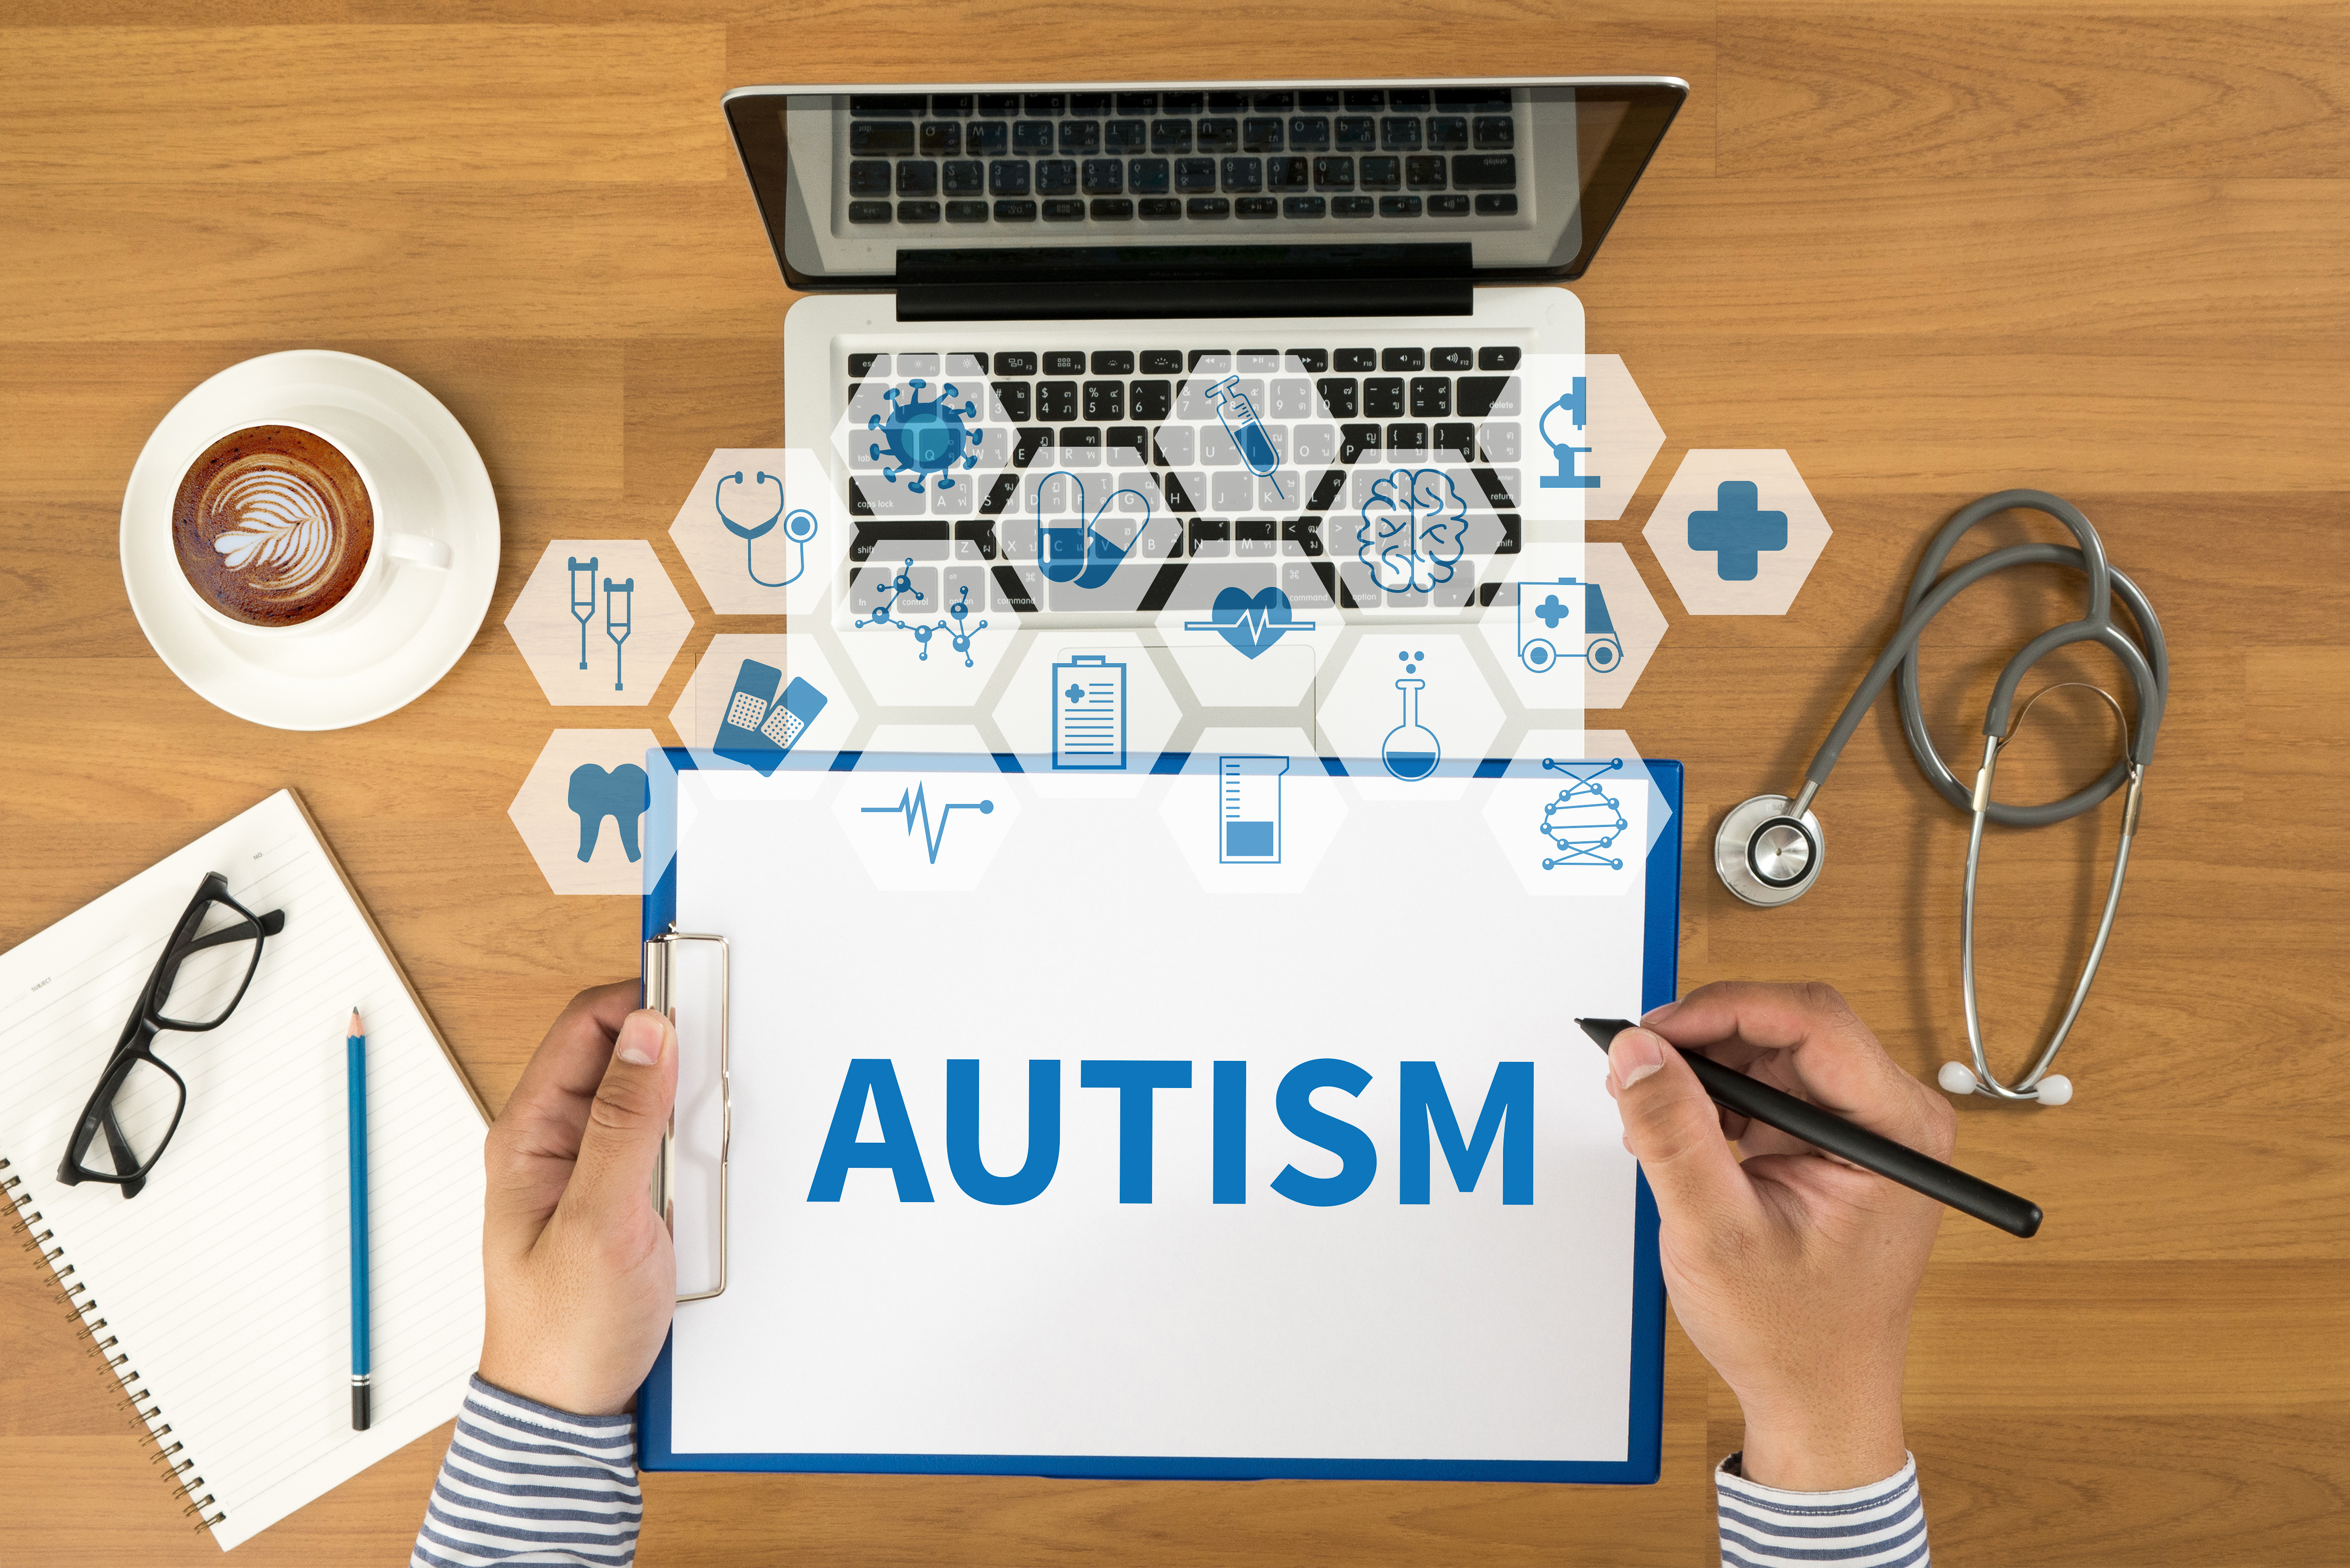 Many autistic people have skills that are highly sought after in the workplace